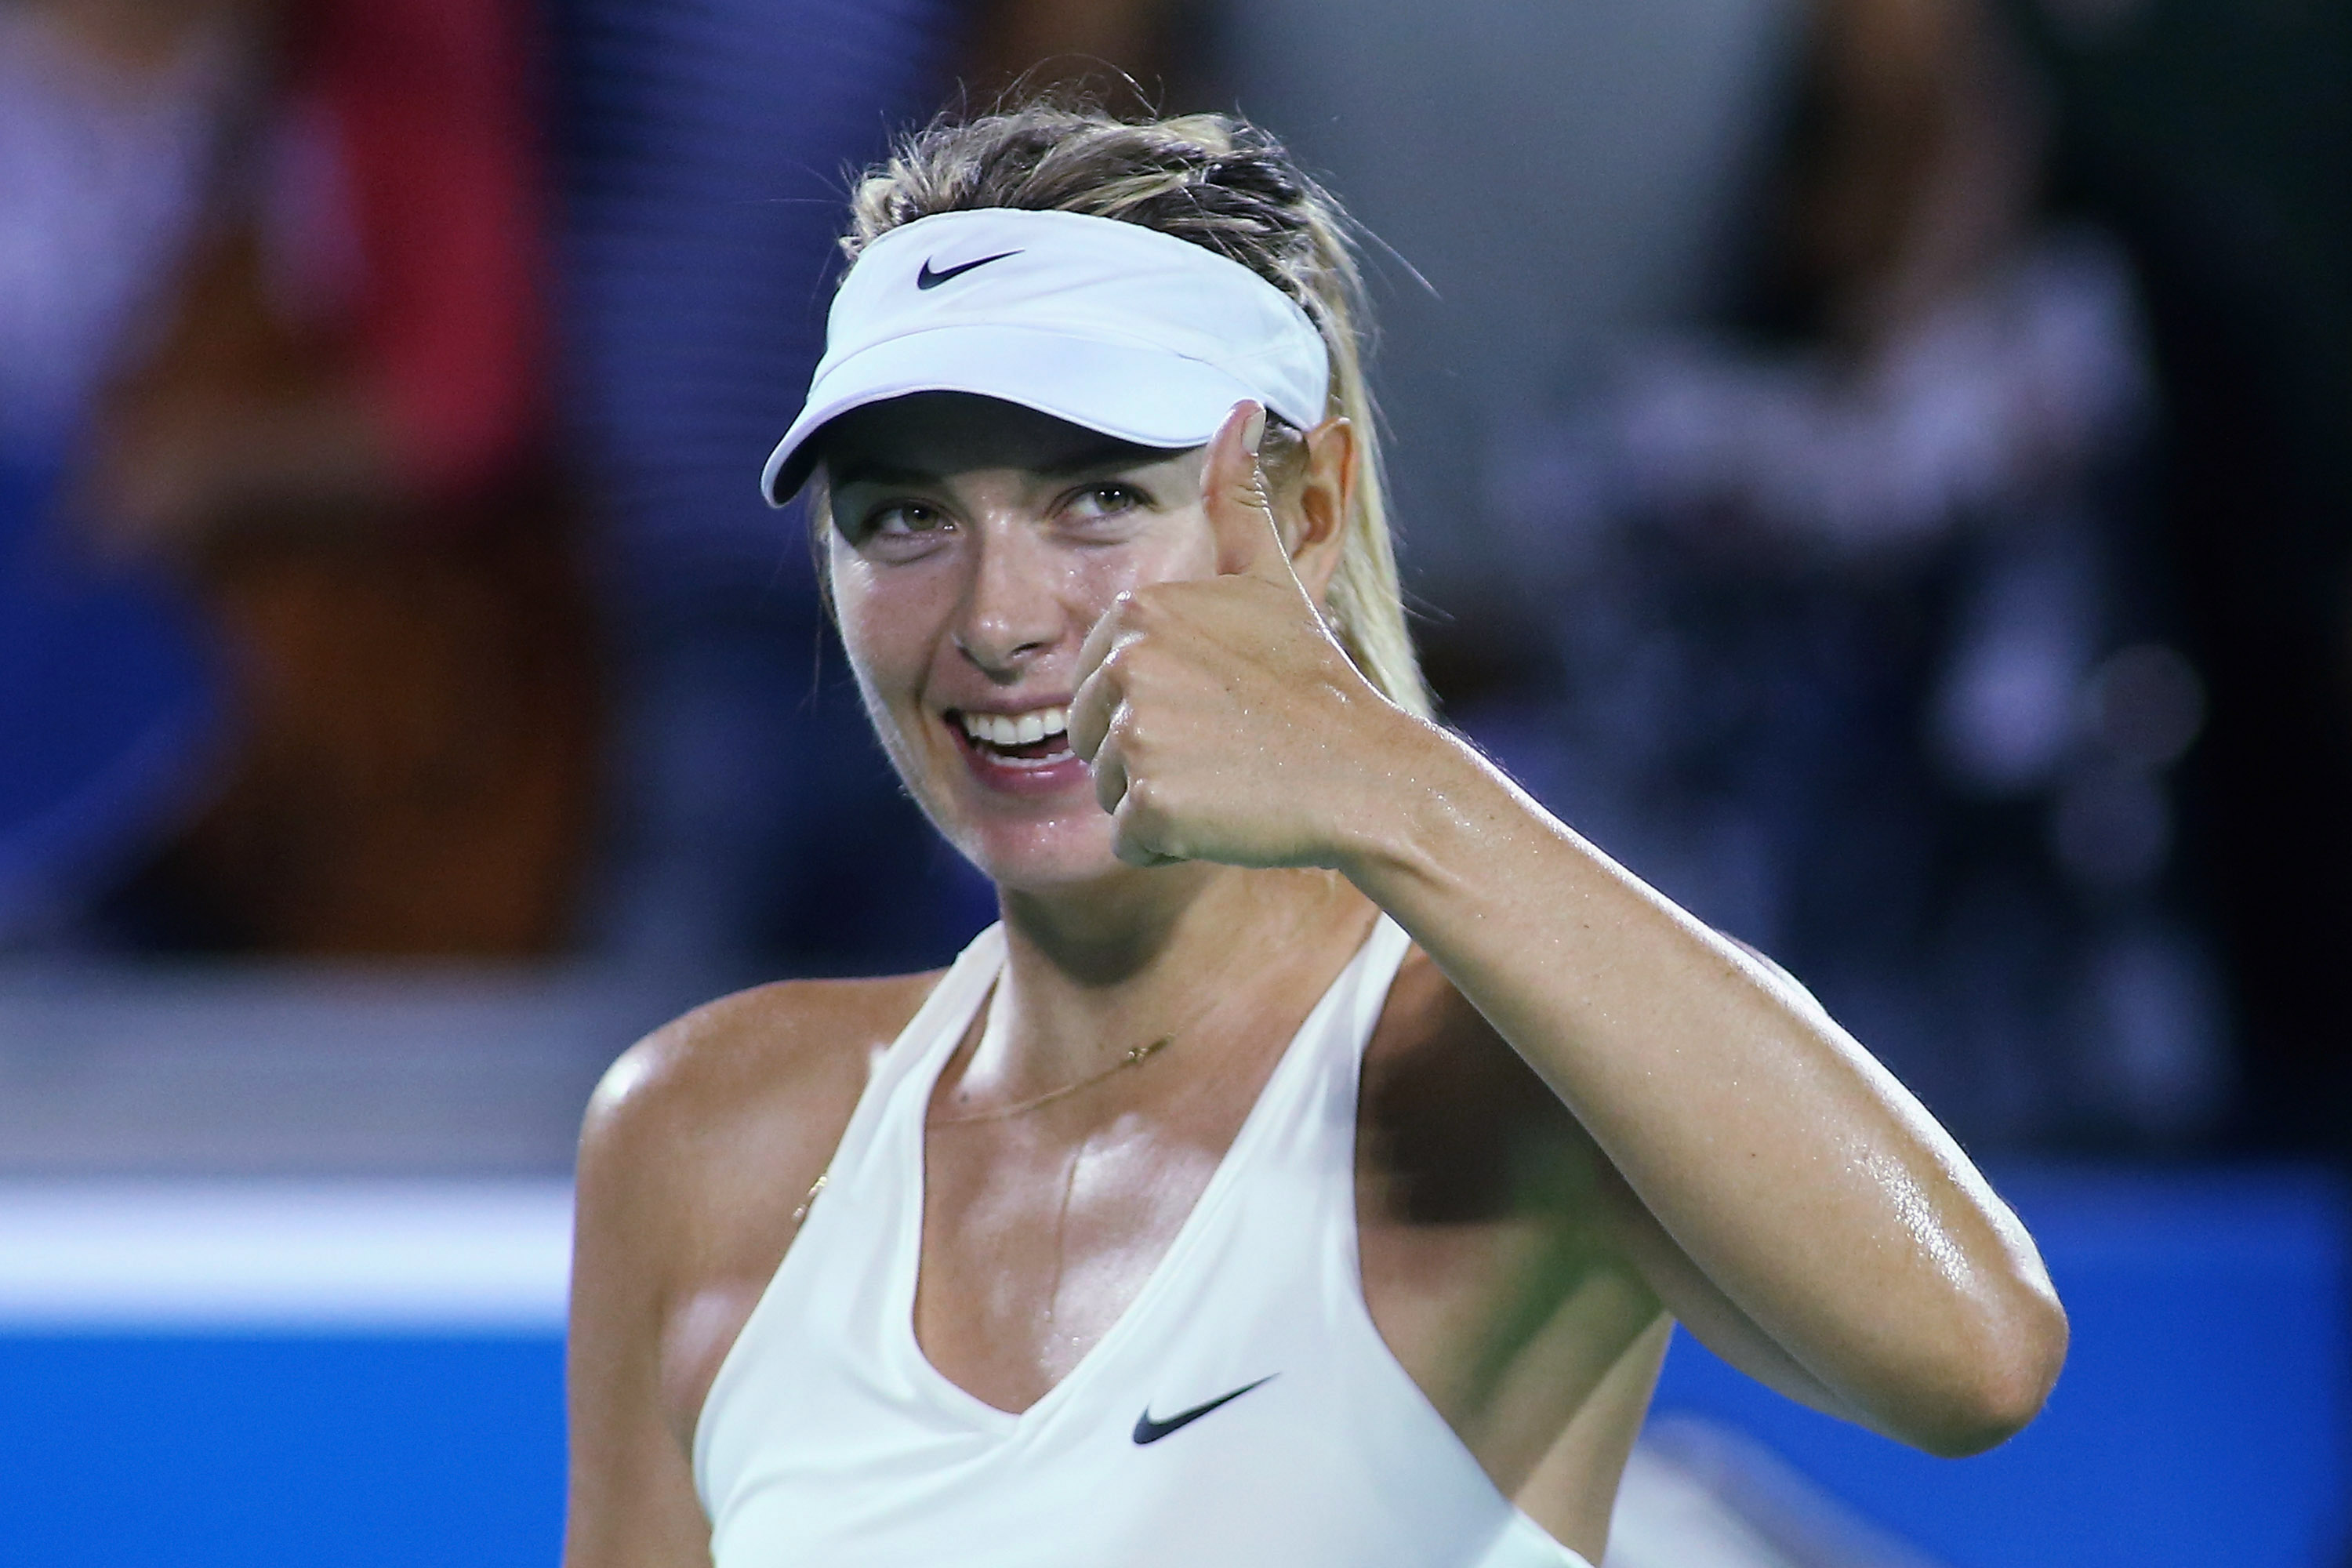 Maria Sharapova gives a thumbs up to the crowd after her win against Kuznetsova.